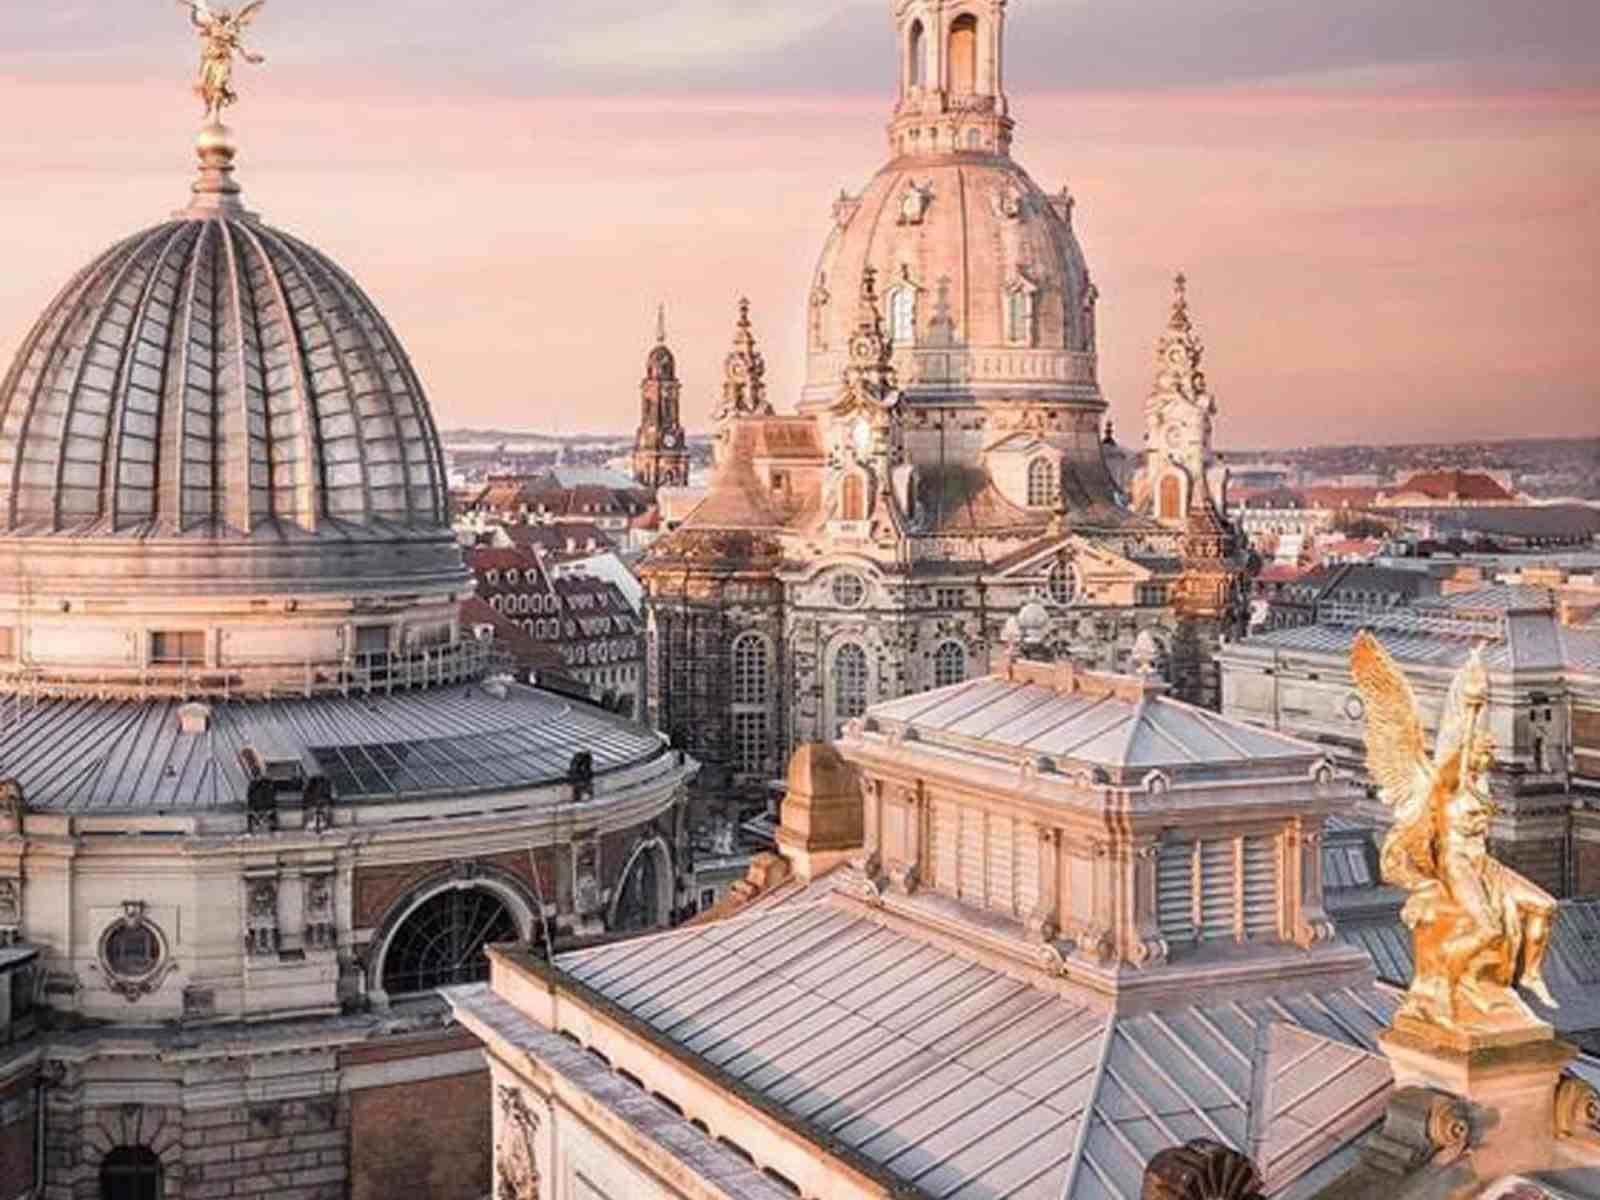 Traveling to Germany soon? If so, these are the top destinations and the common knowledge to know before heading over there!